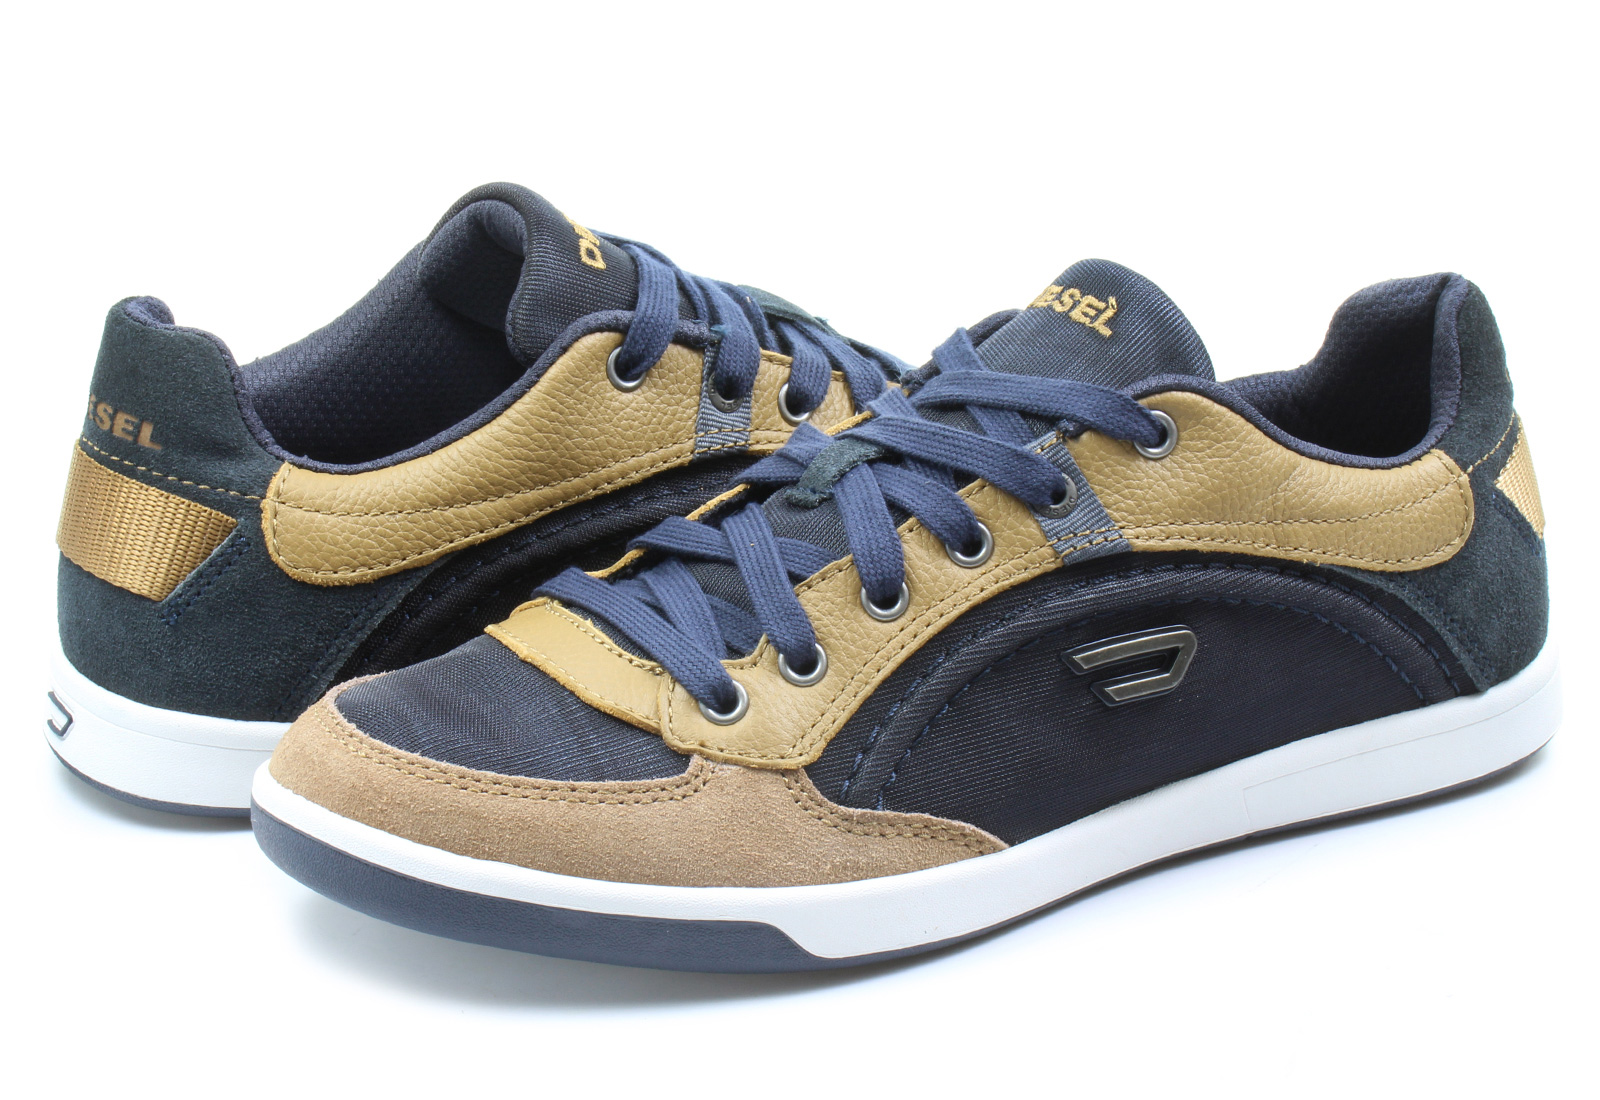 Diesel Shoes - Starch - 674-308-5407 - Online shop for ...